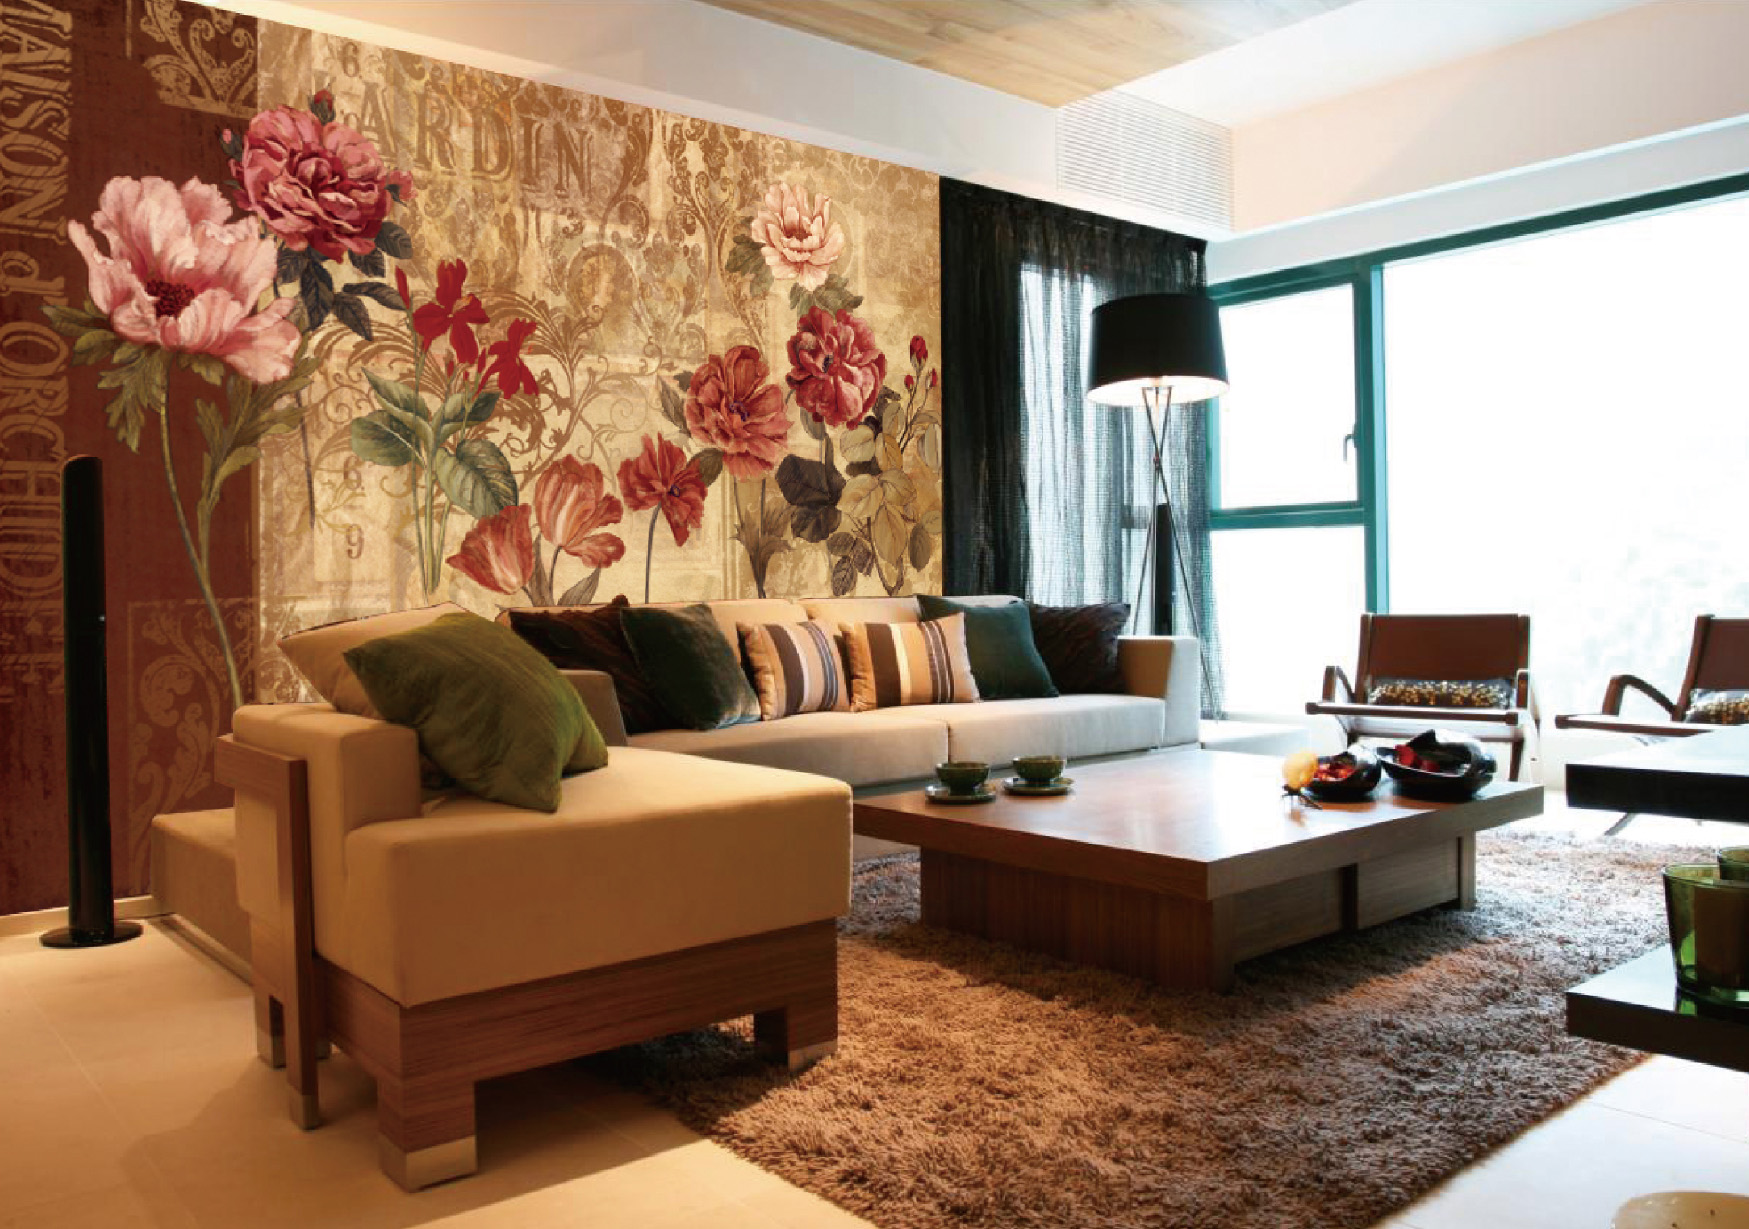 Retro Flowers Wall Mural 8106